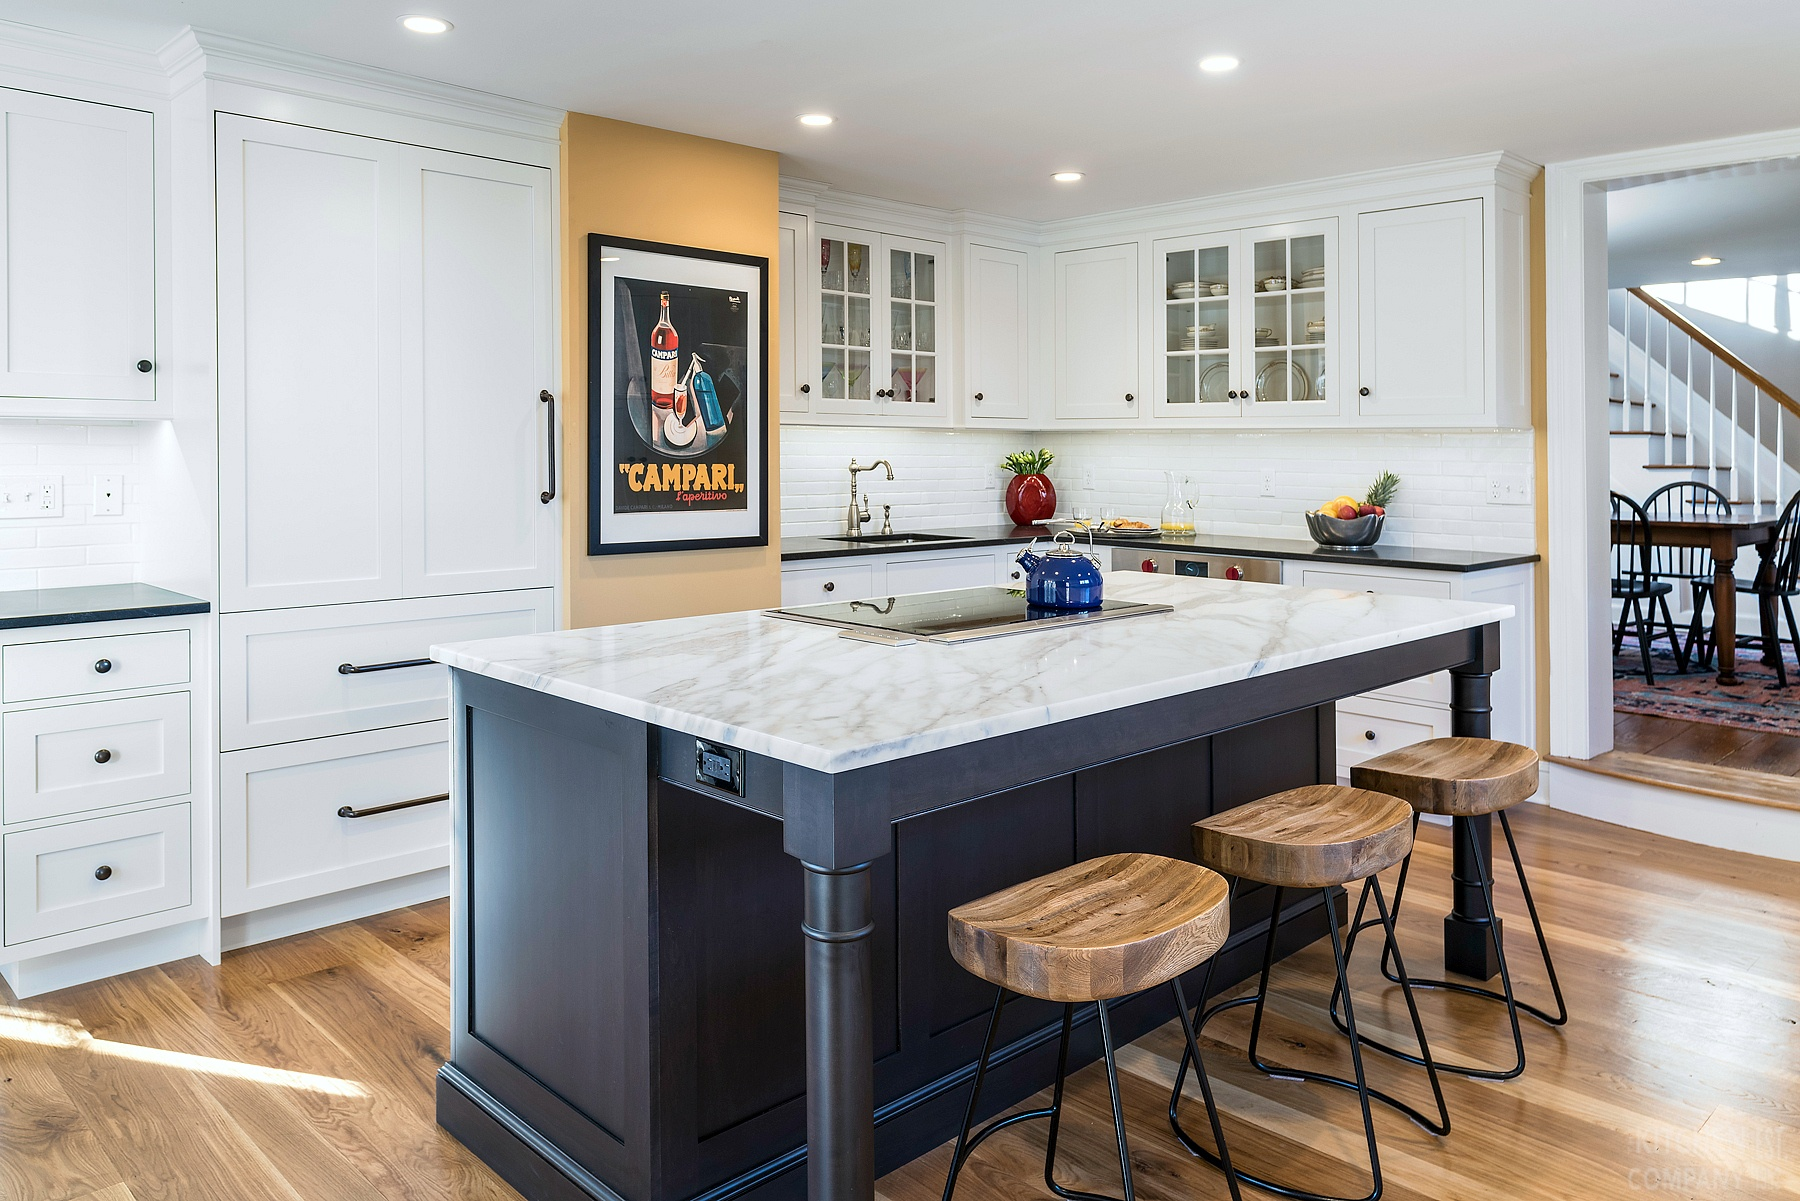 Kitchen design in madison ct home and harmony for 2 kitchen ct edison nj